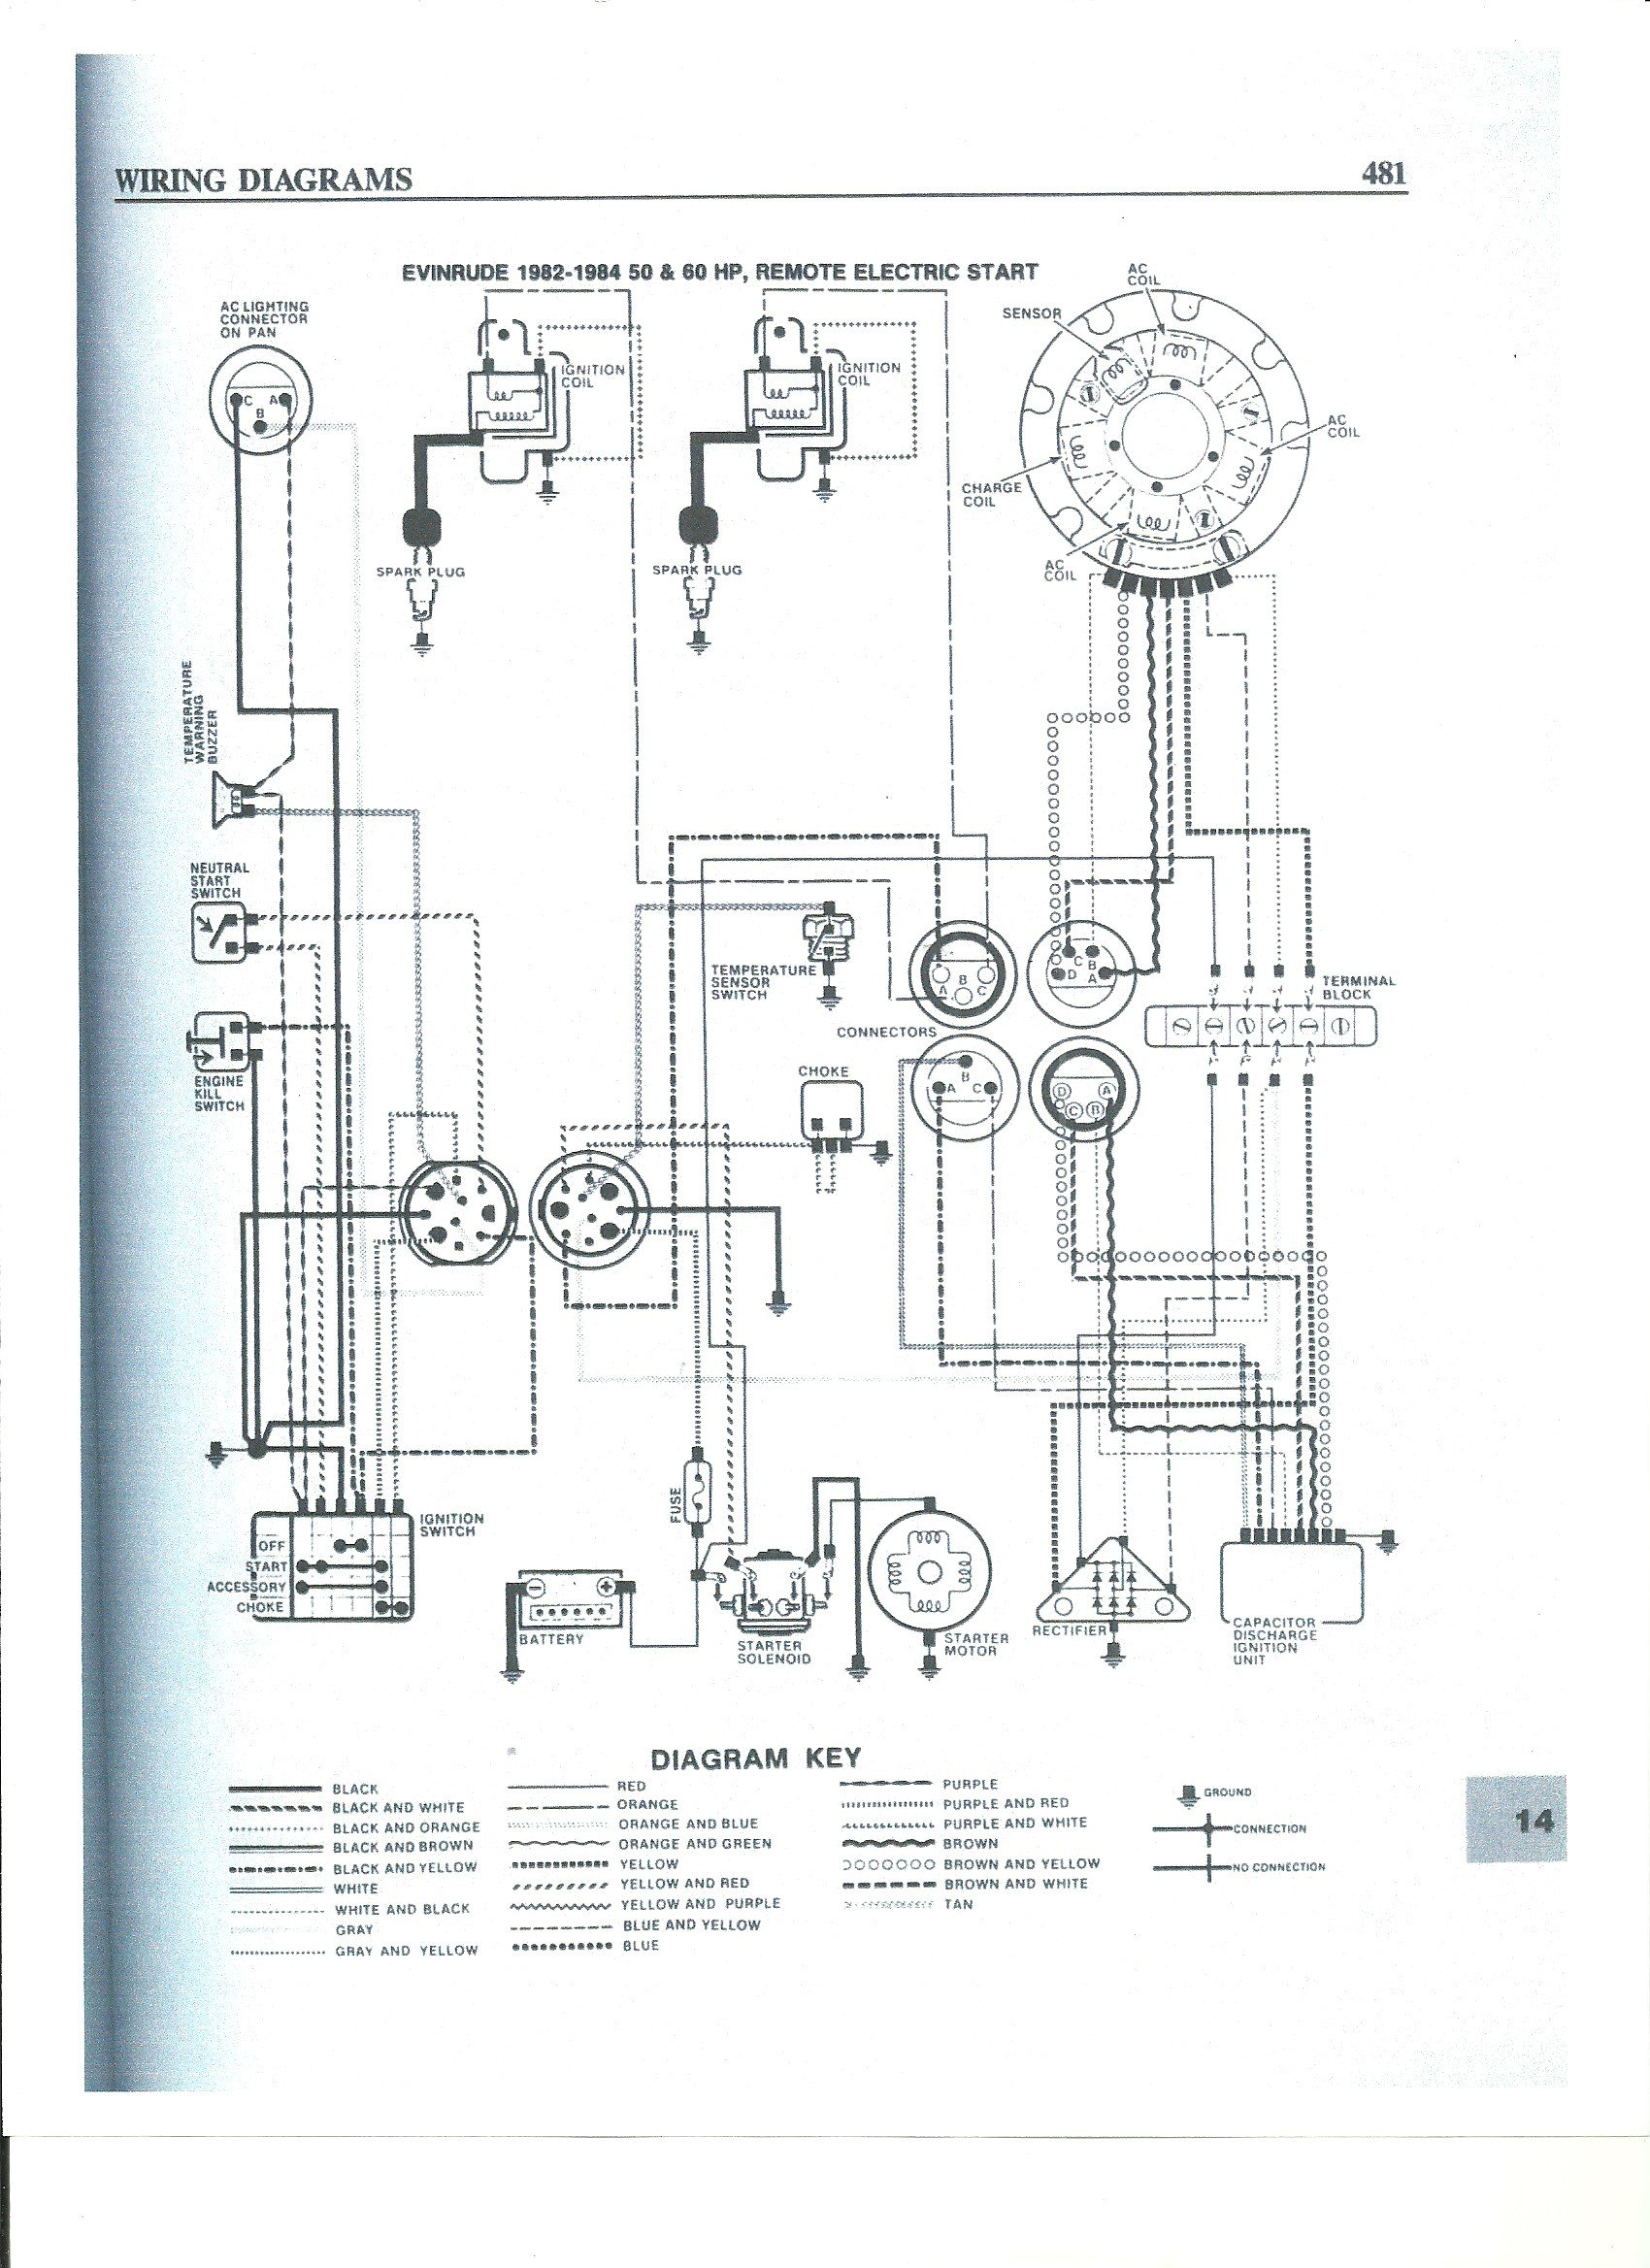 2003 Johnson 50 Hp Wiring Diagram | Wiring Schematic Diagram on